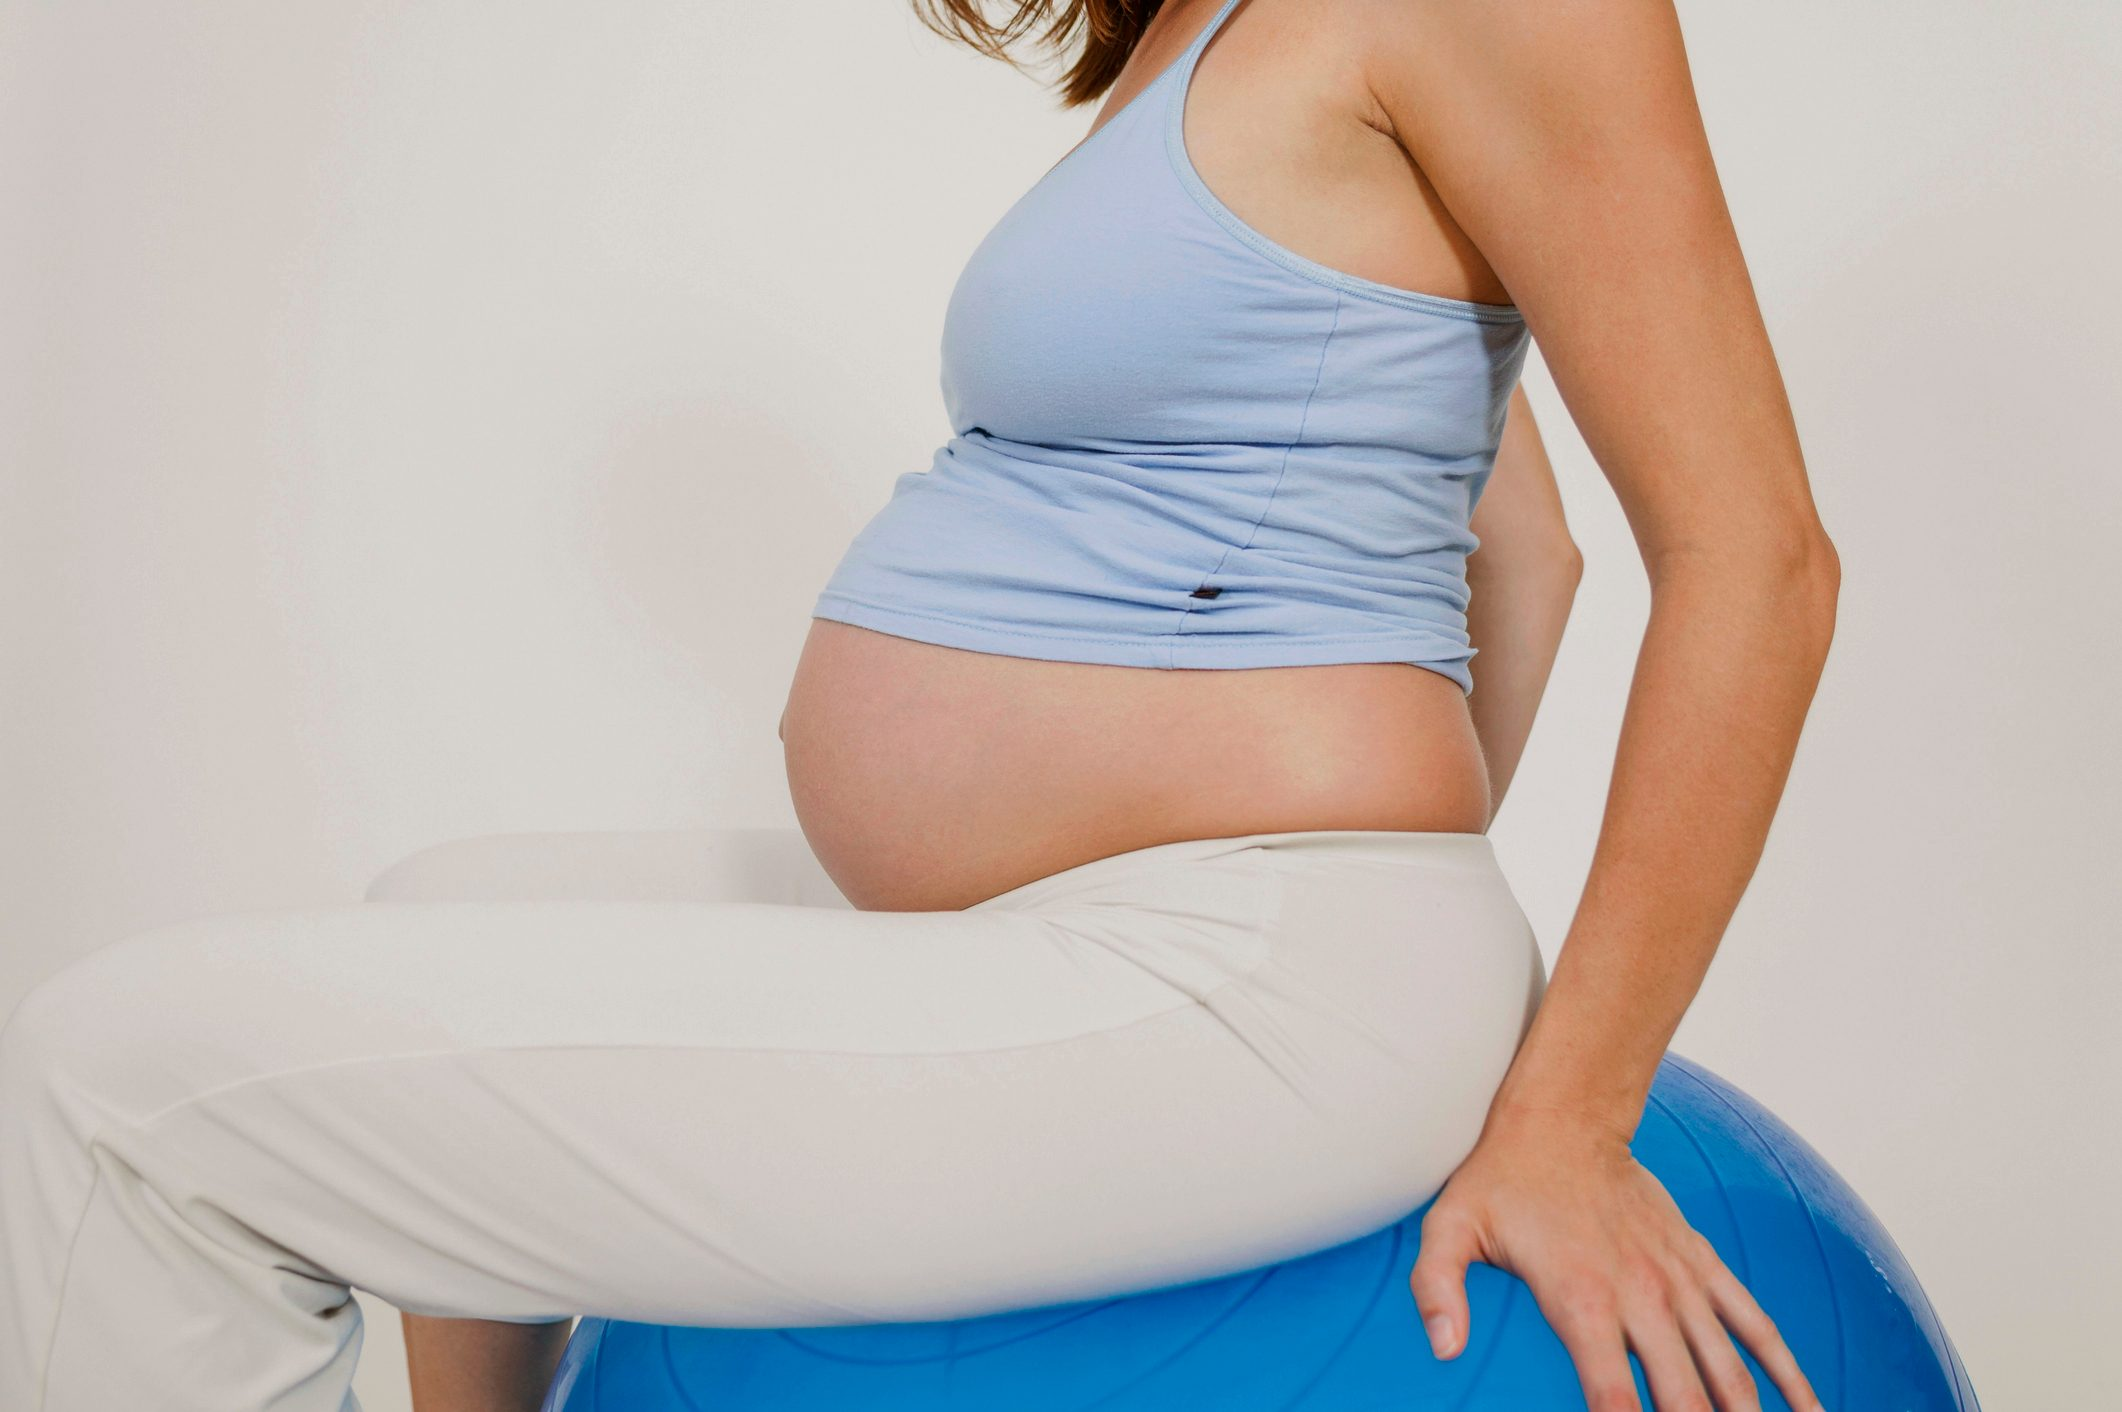 pregnant woman sitting on exercise ball during labor